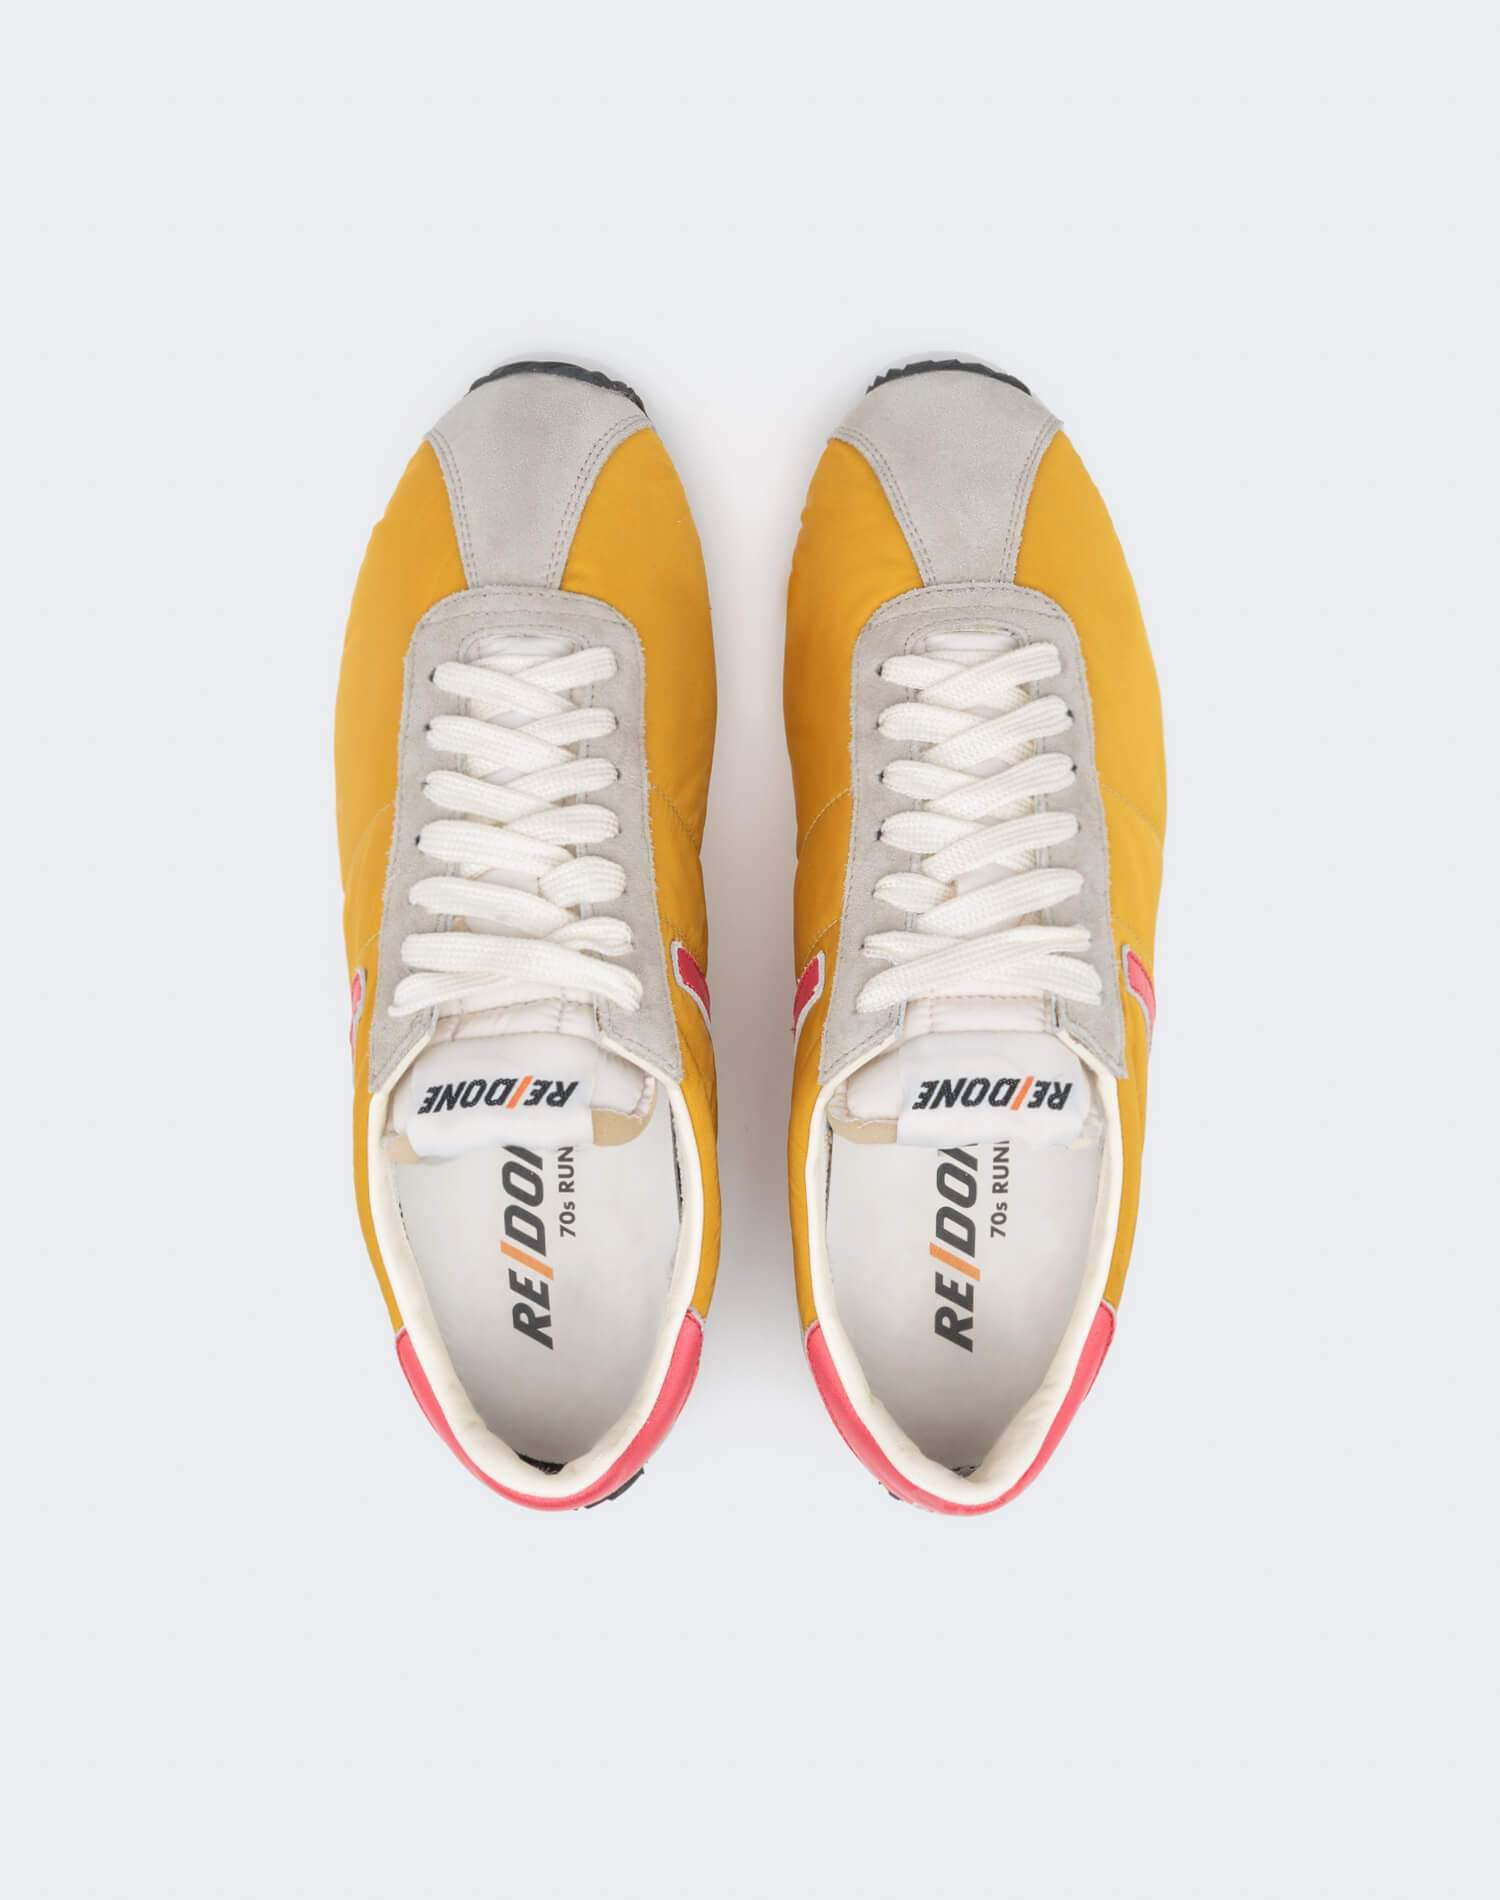 70s Runner Shoe - Yellow and Red 2